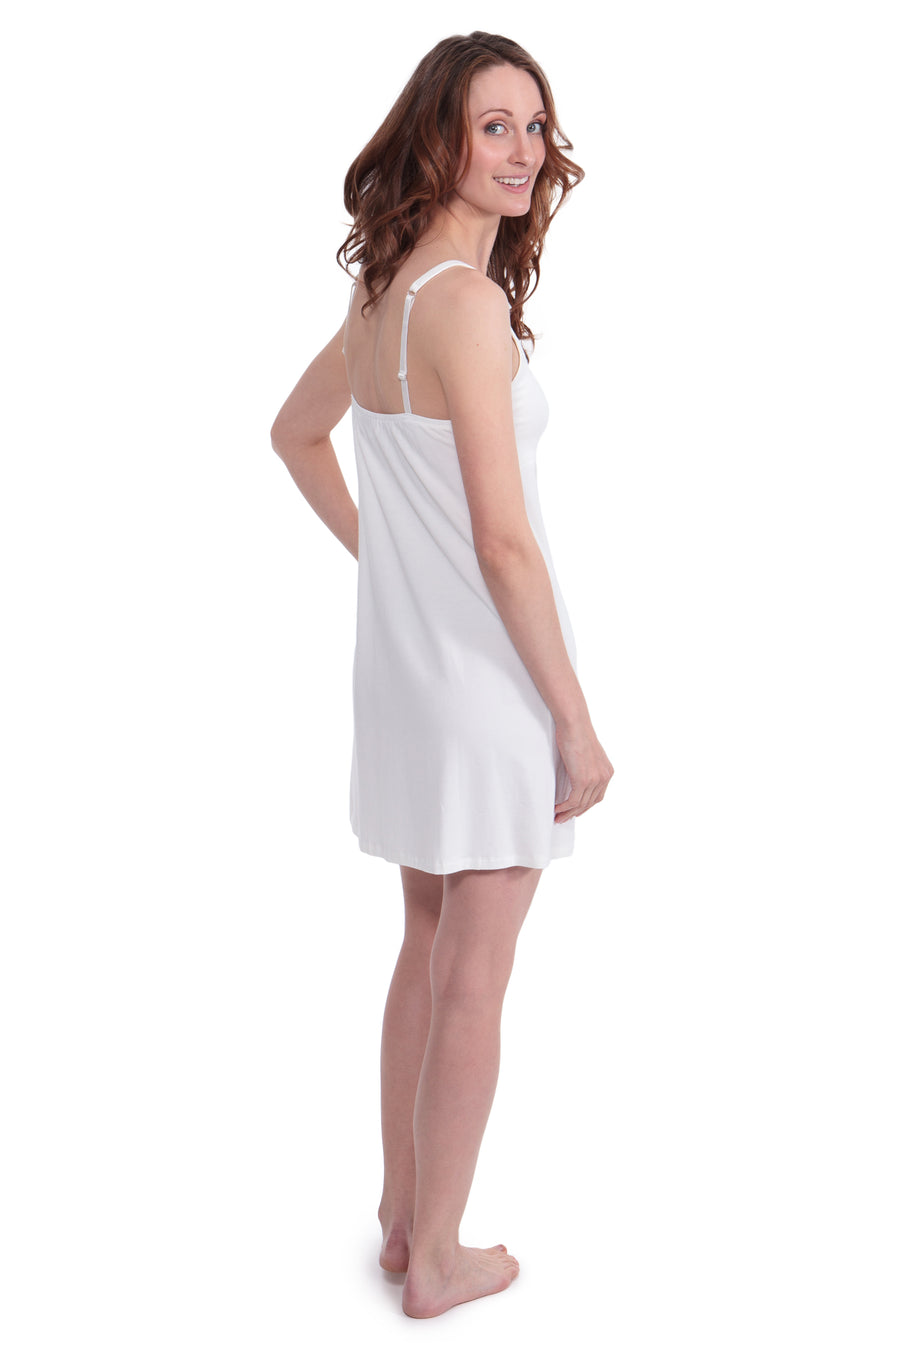 Tropical Romance - Women's Bamboo Viscose Nightgown - TexereSilk